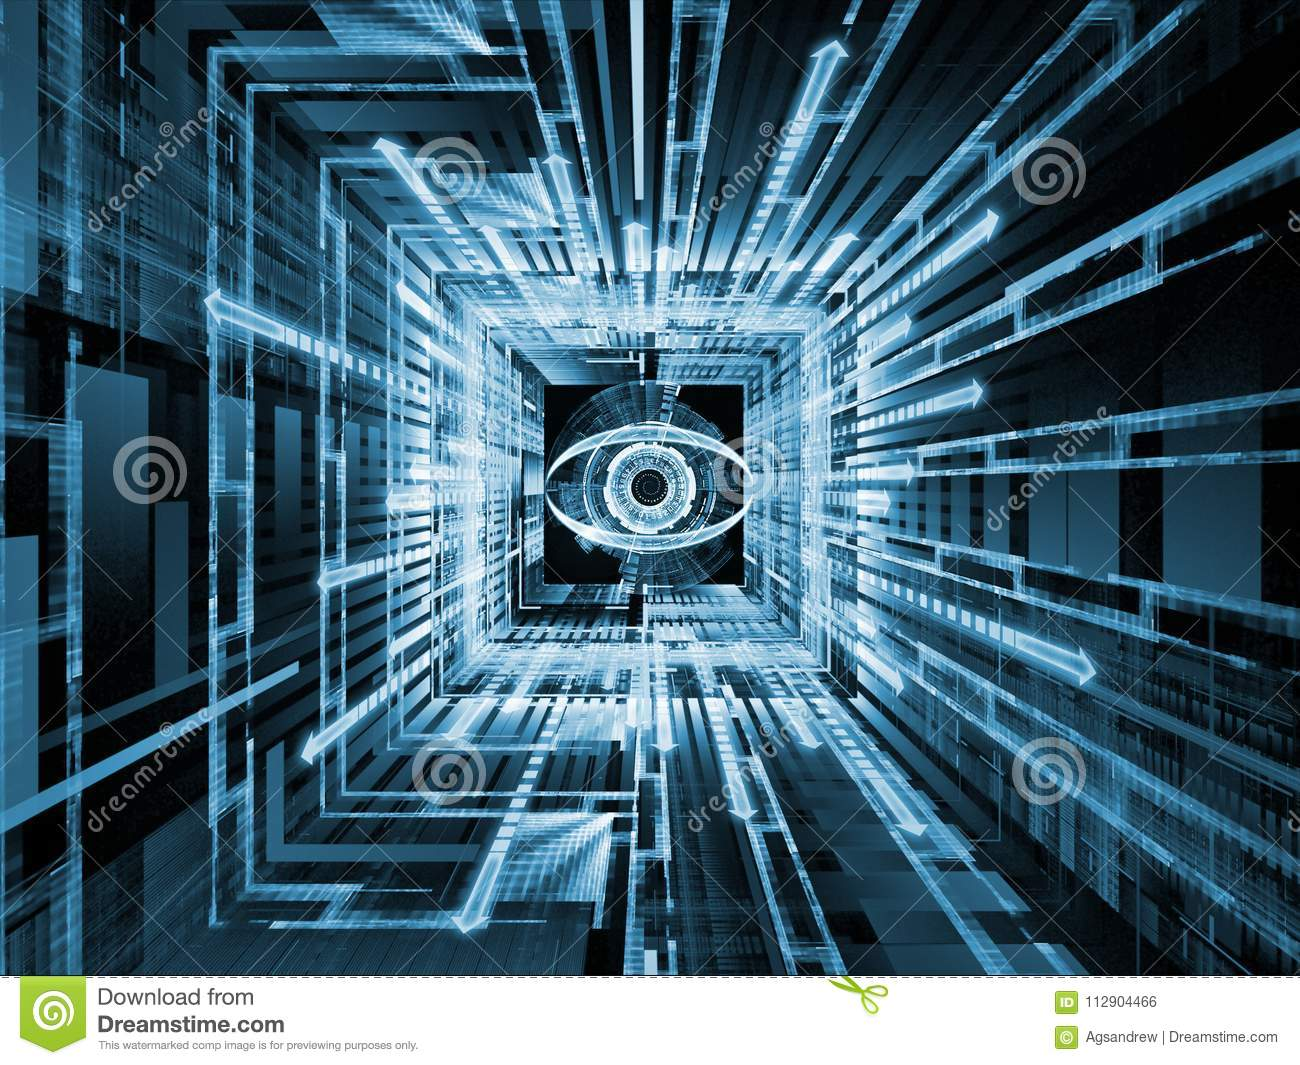 Watching spirit stock illustration illustration of backdrop 112904466 3d illustration of symbol of an eye motion trails and fractal patterns for use with projects on information technology security privacy communications biocorpaavc Images